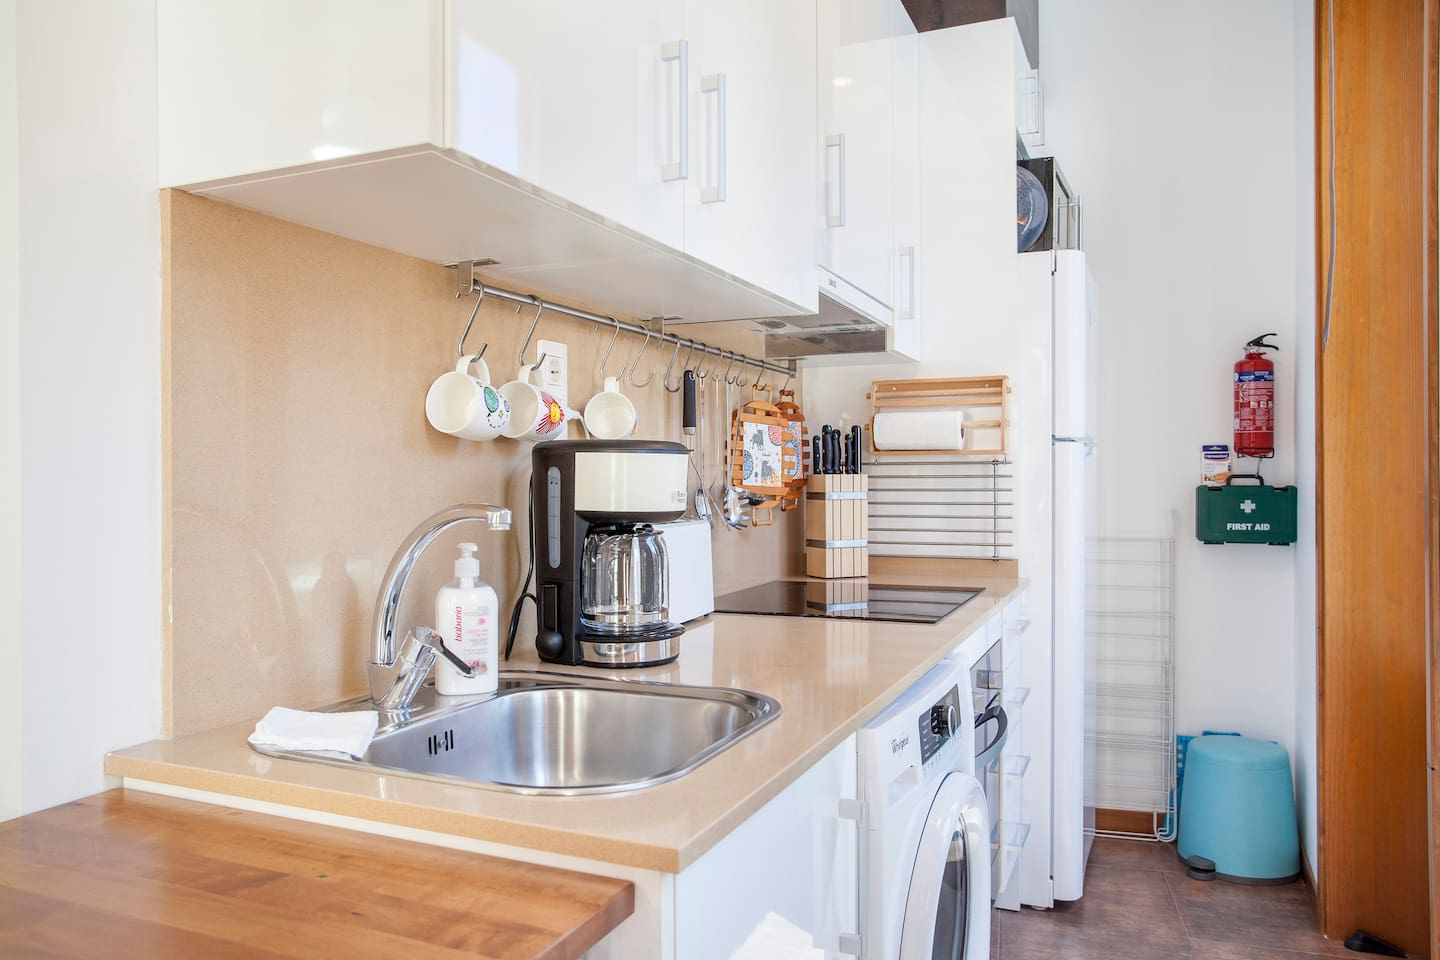 FULLY EQUIPPED KITCHEN WITH EVERYTHING YOU NEED